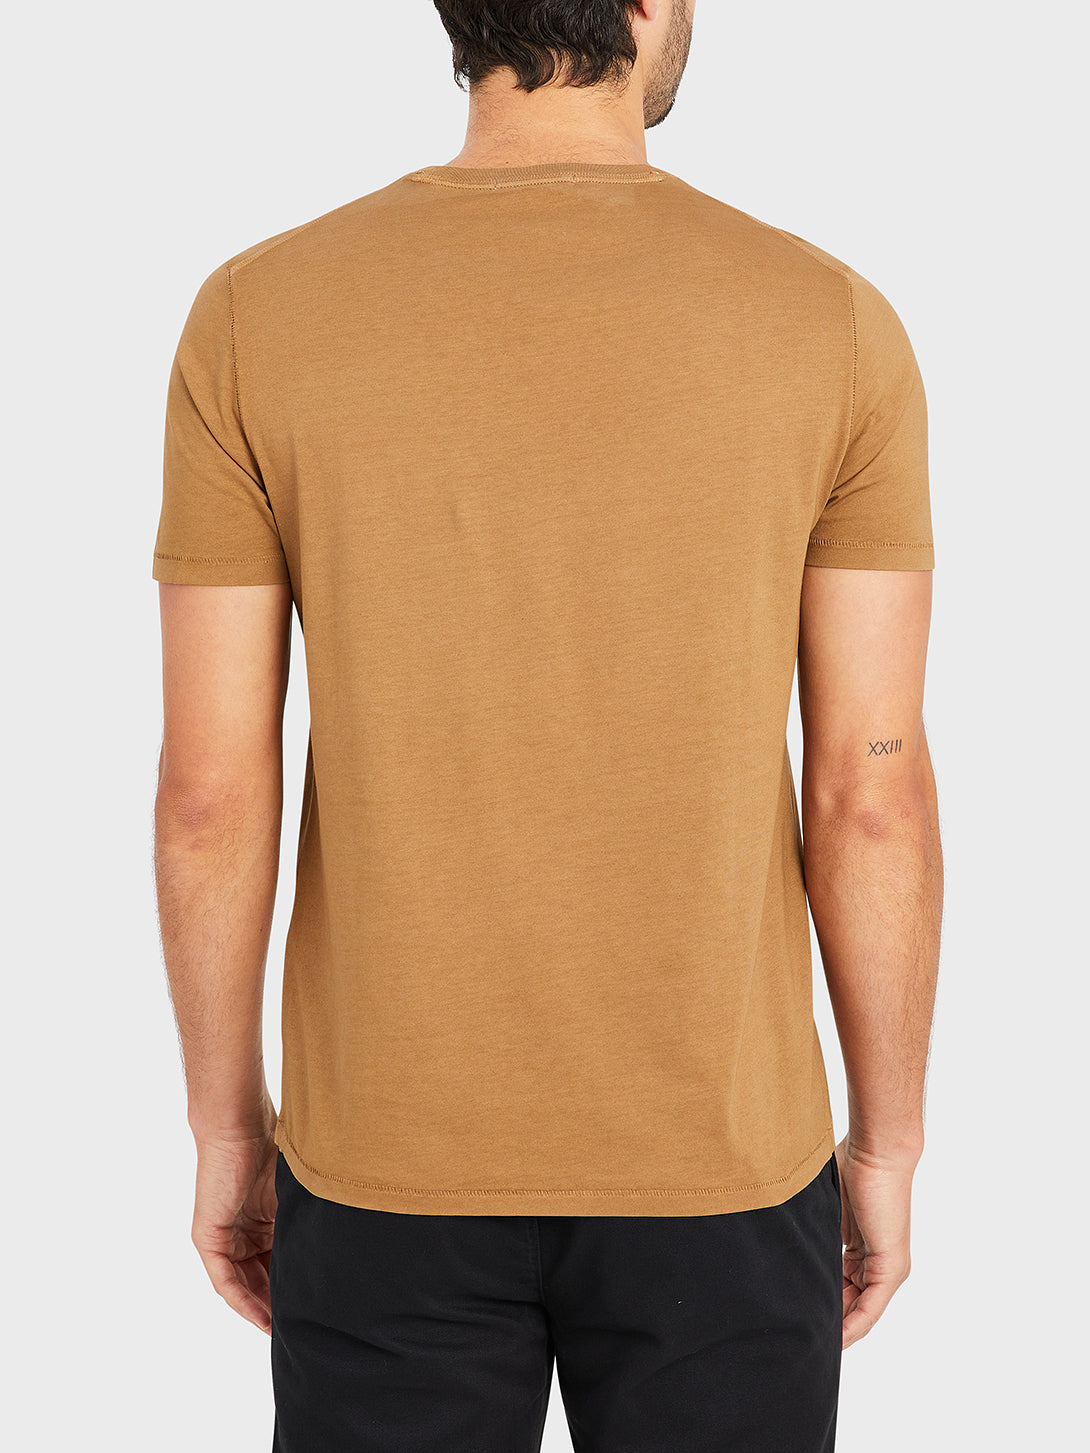 ONS VILLAGE CREW NECK TEE COFFEE 100% Supima Cotton, Pre-shrunk cotton black friday deals